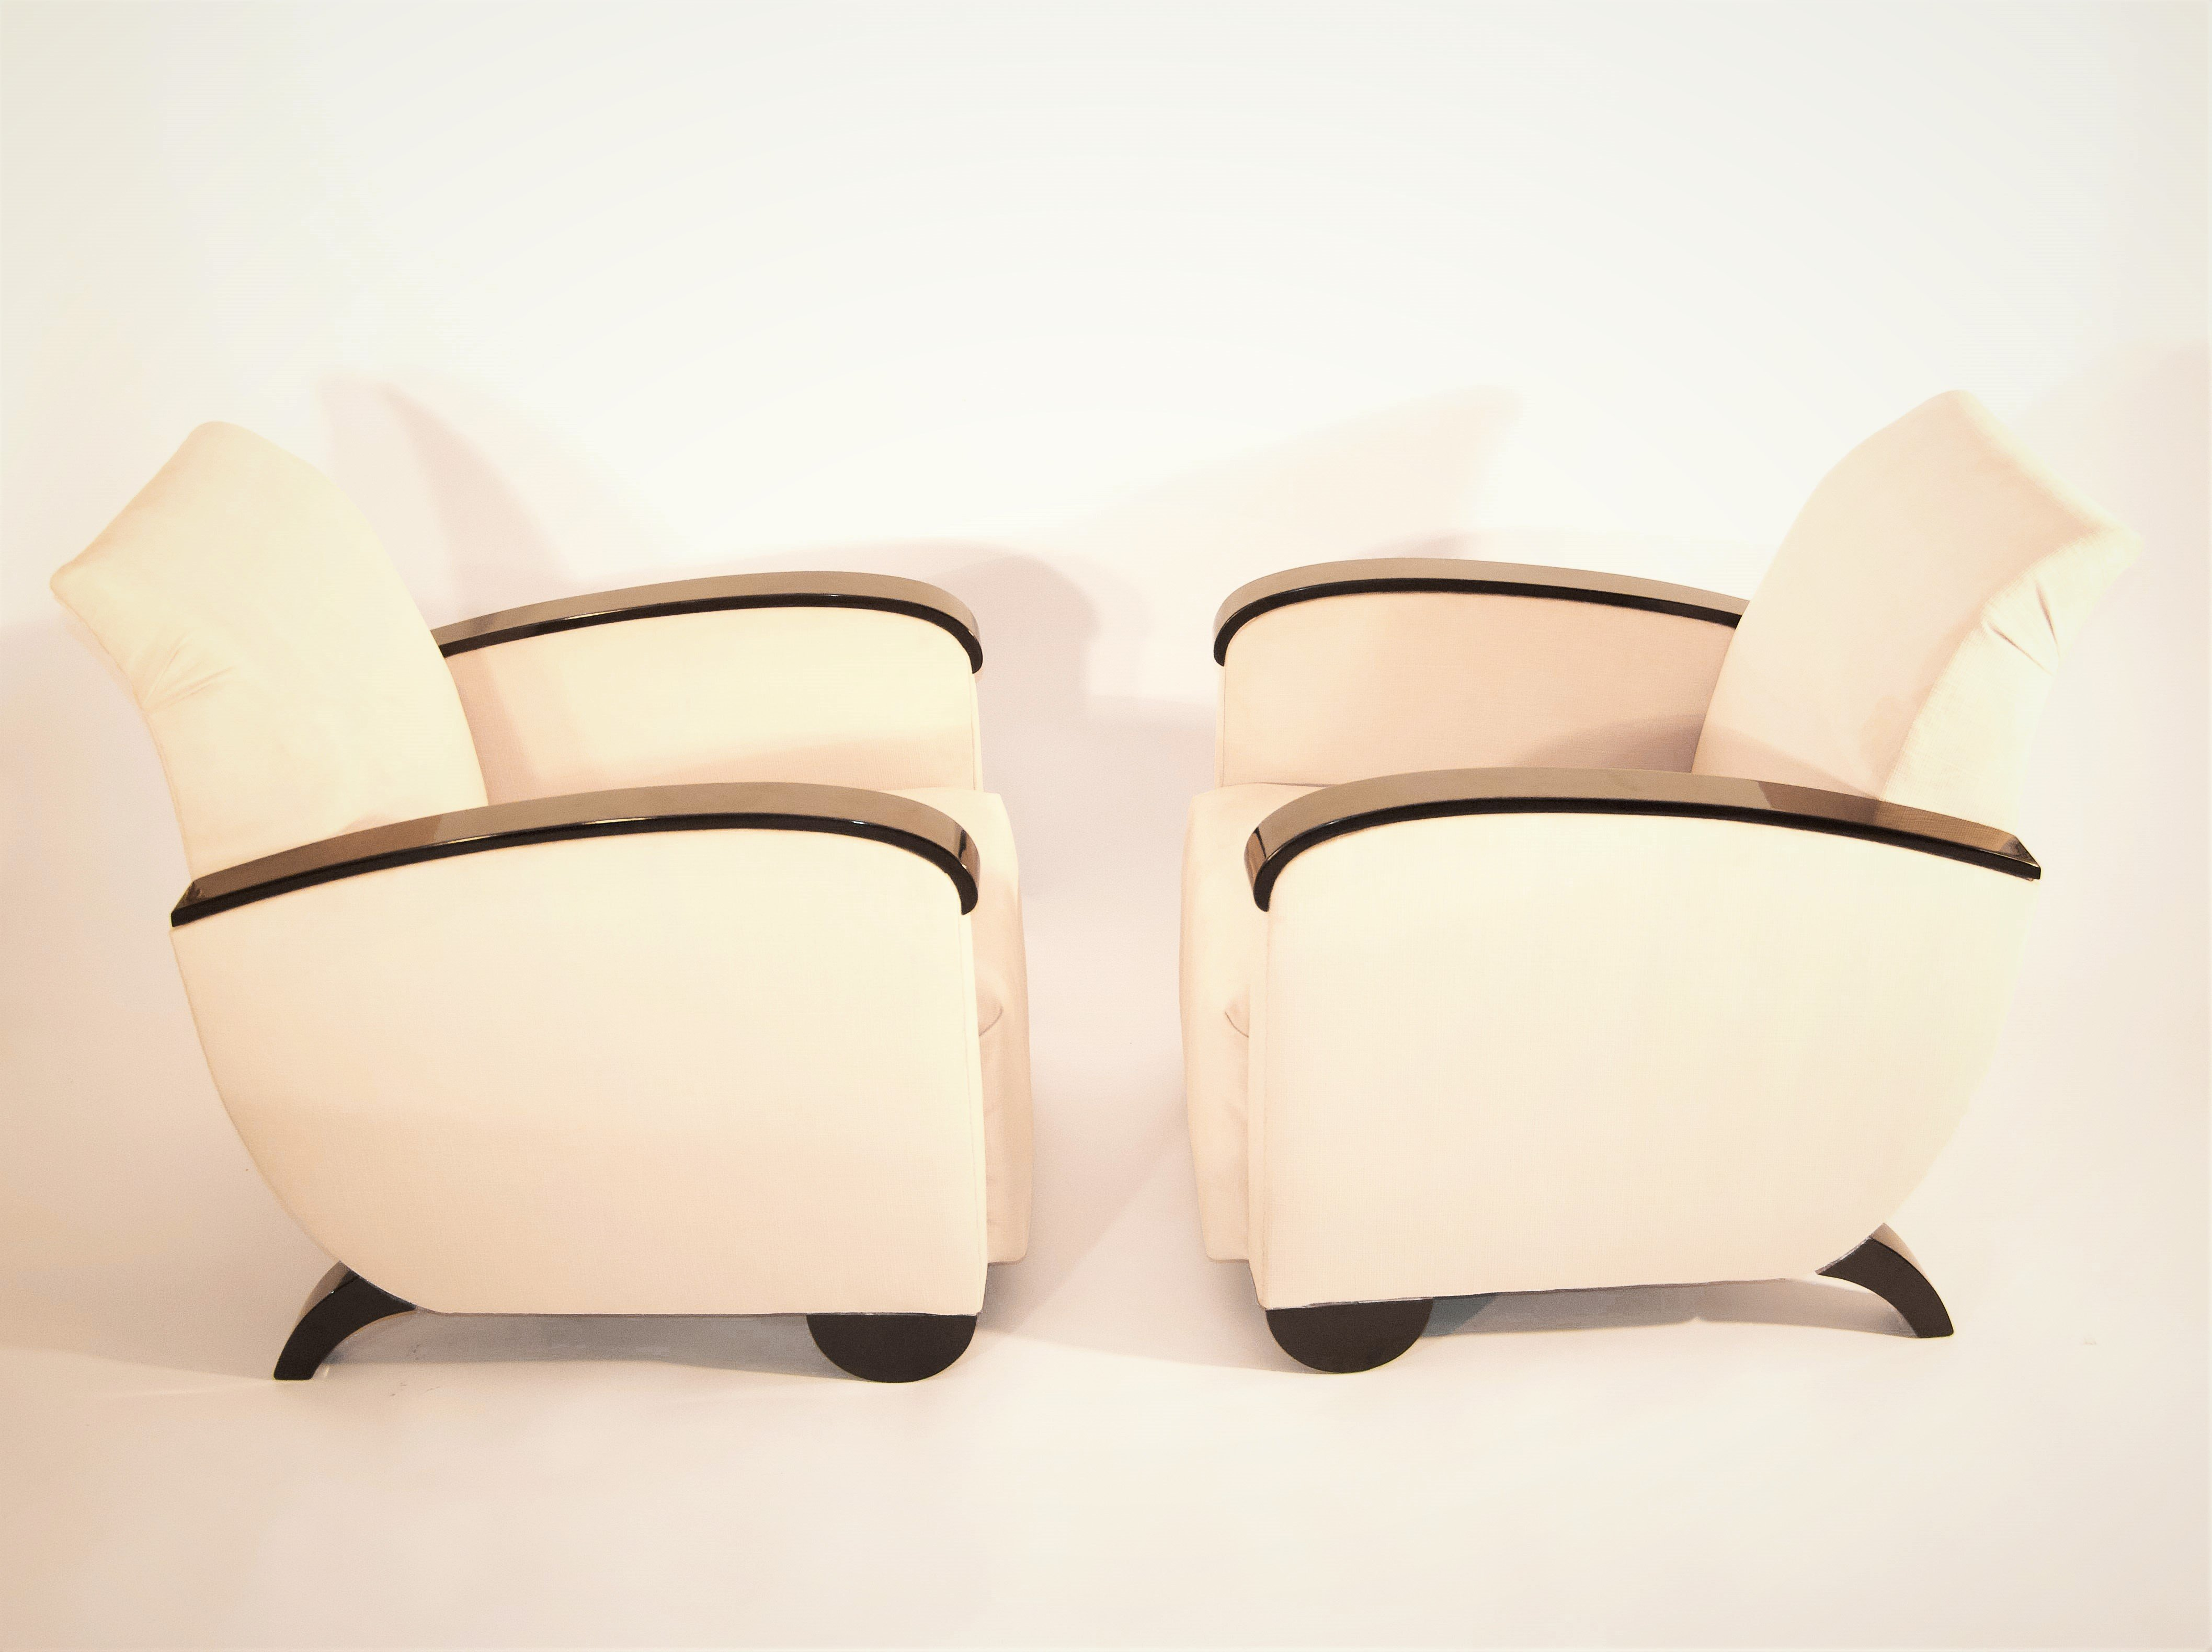 Art Deco French Armchairs, 1930s